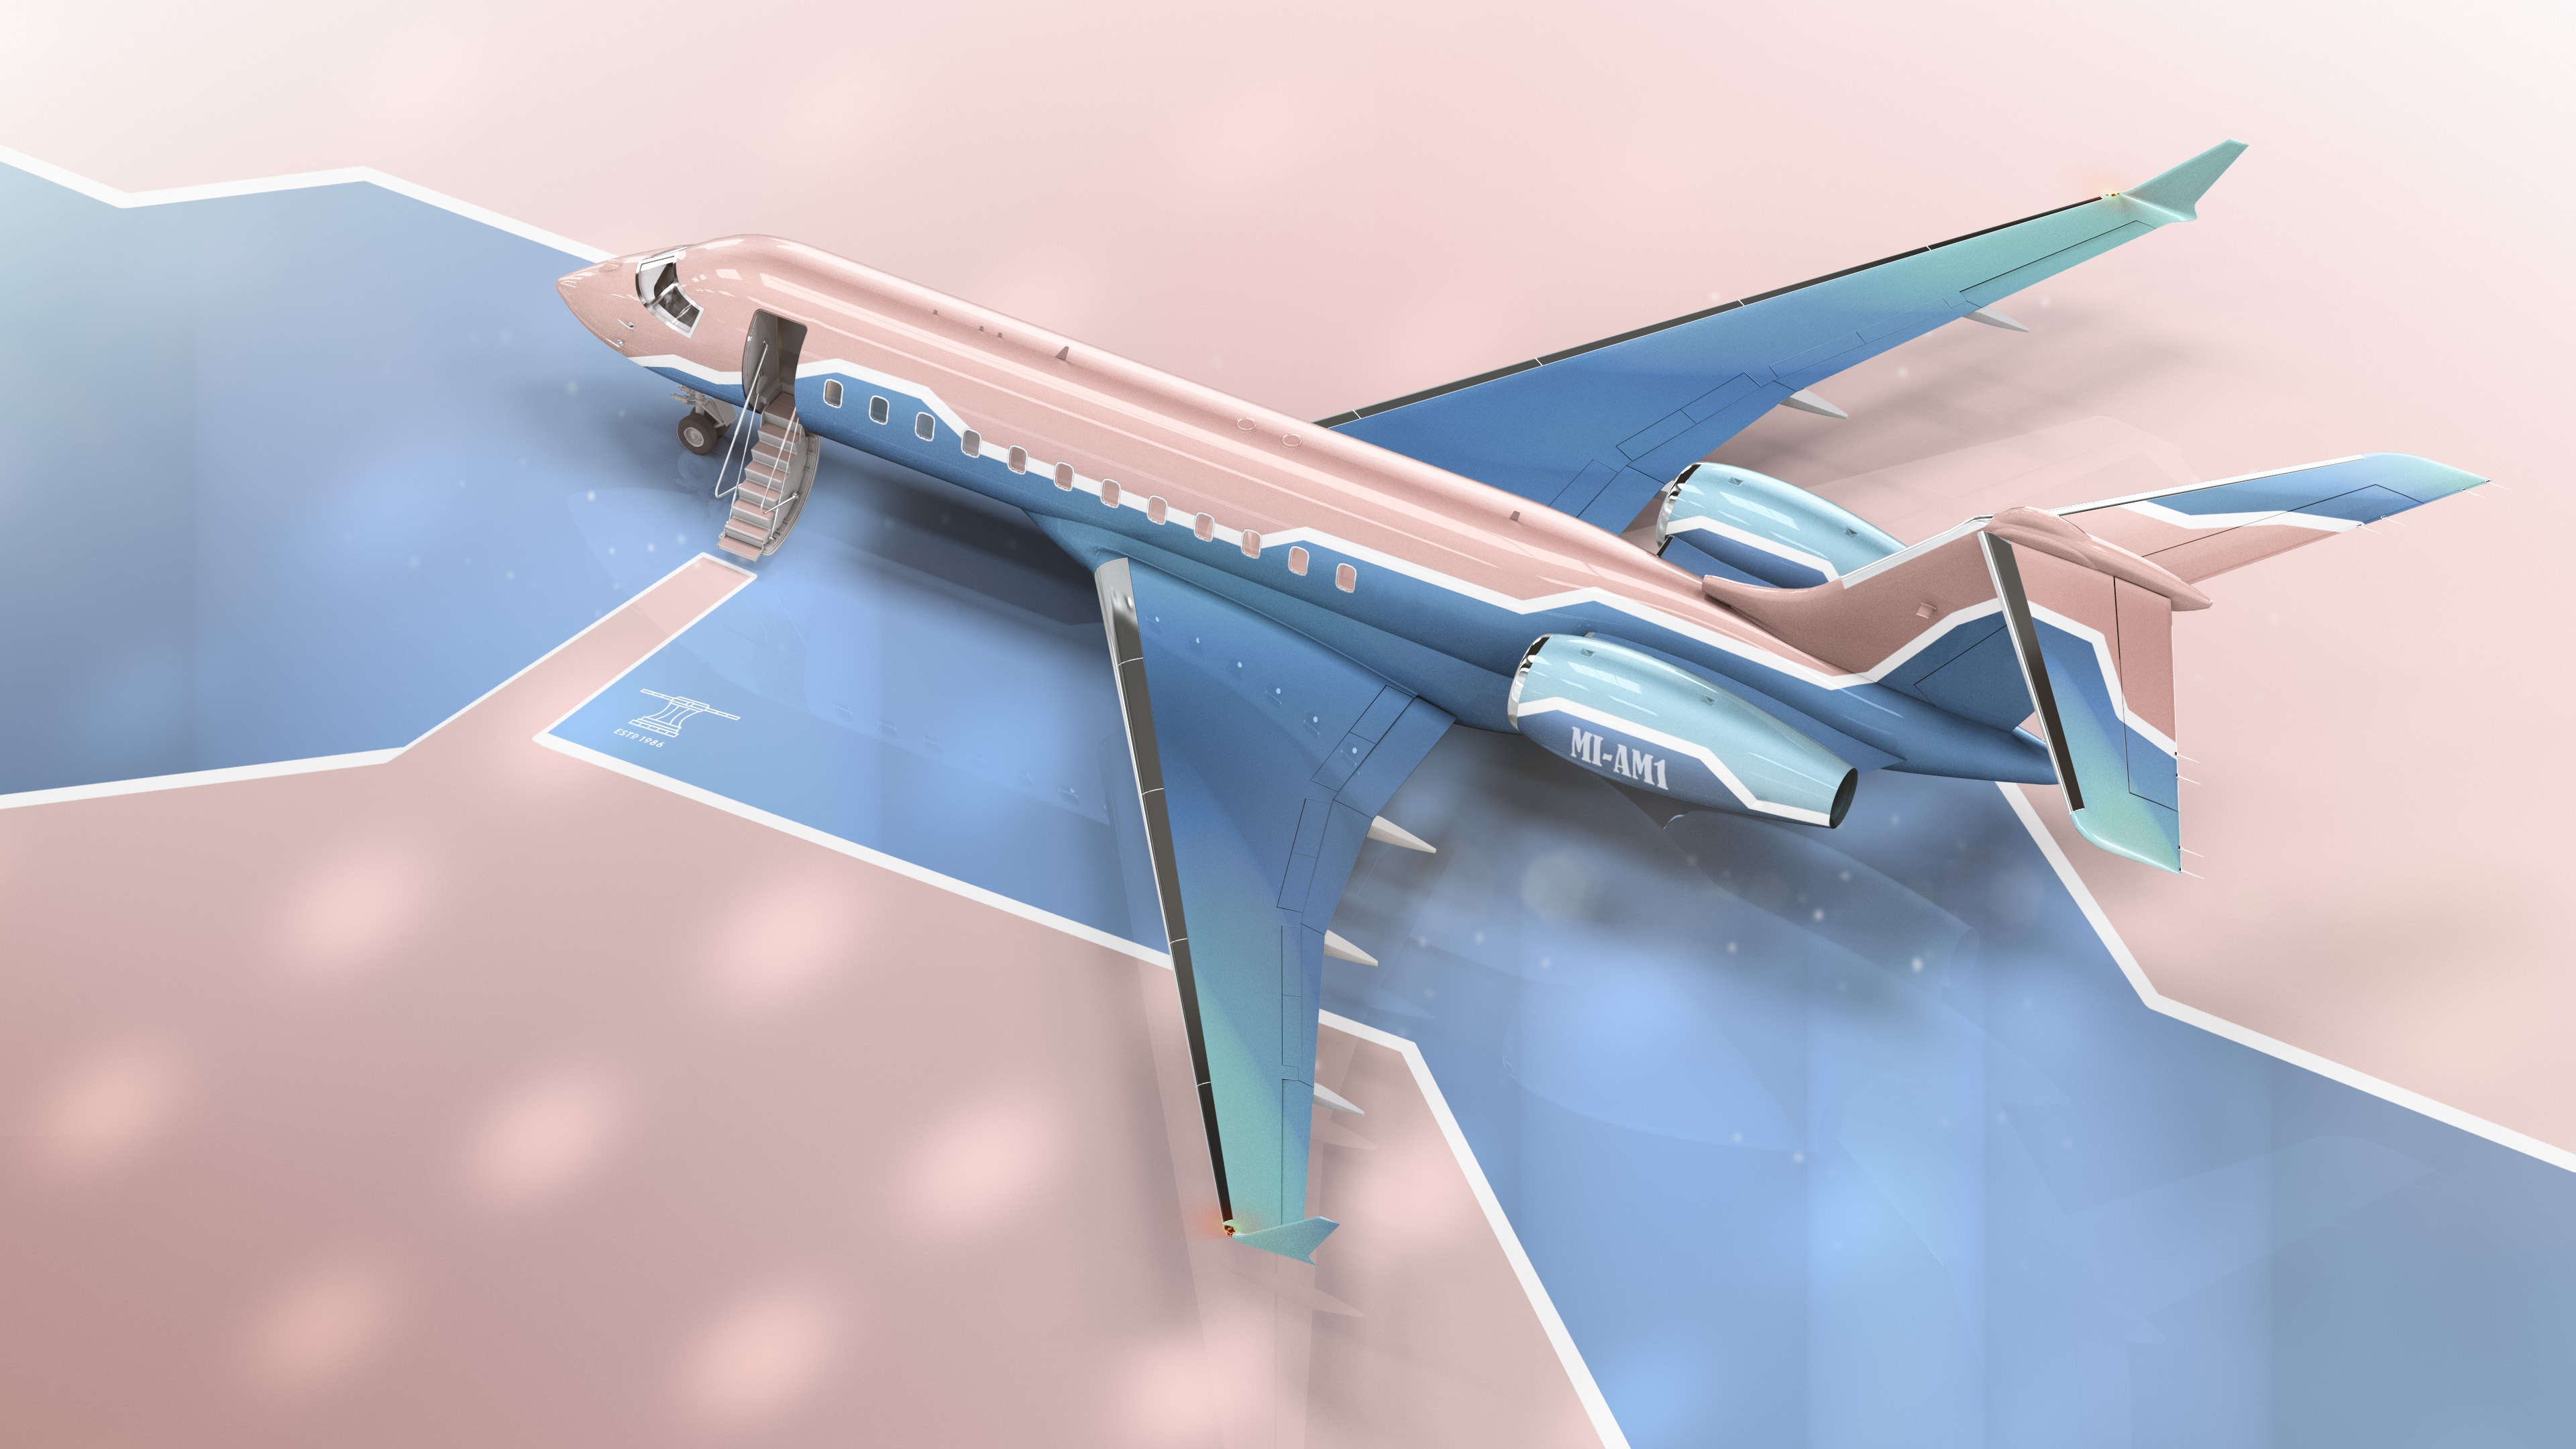 Project-Miami-Exterior-Livery.jpg